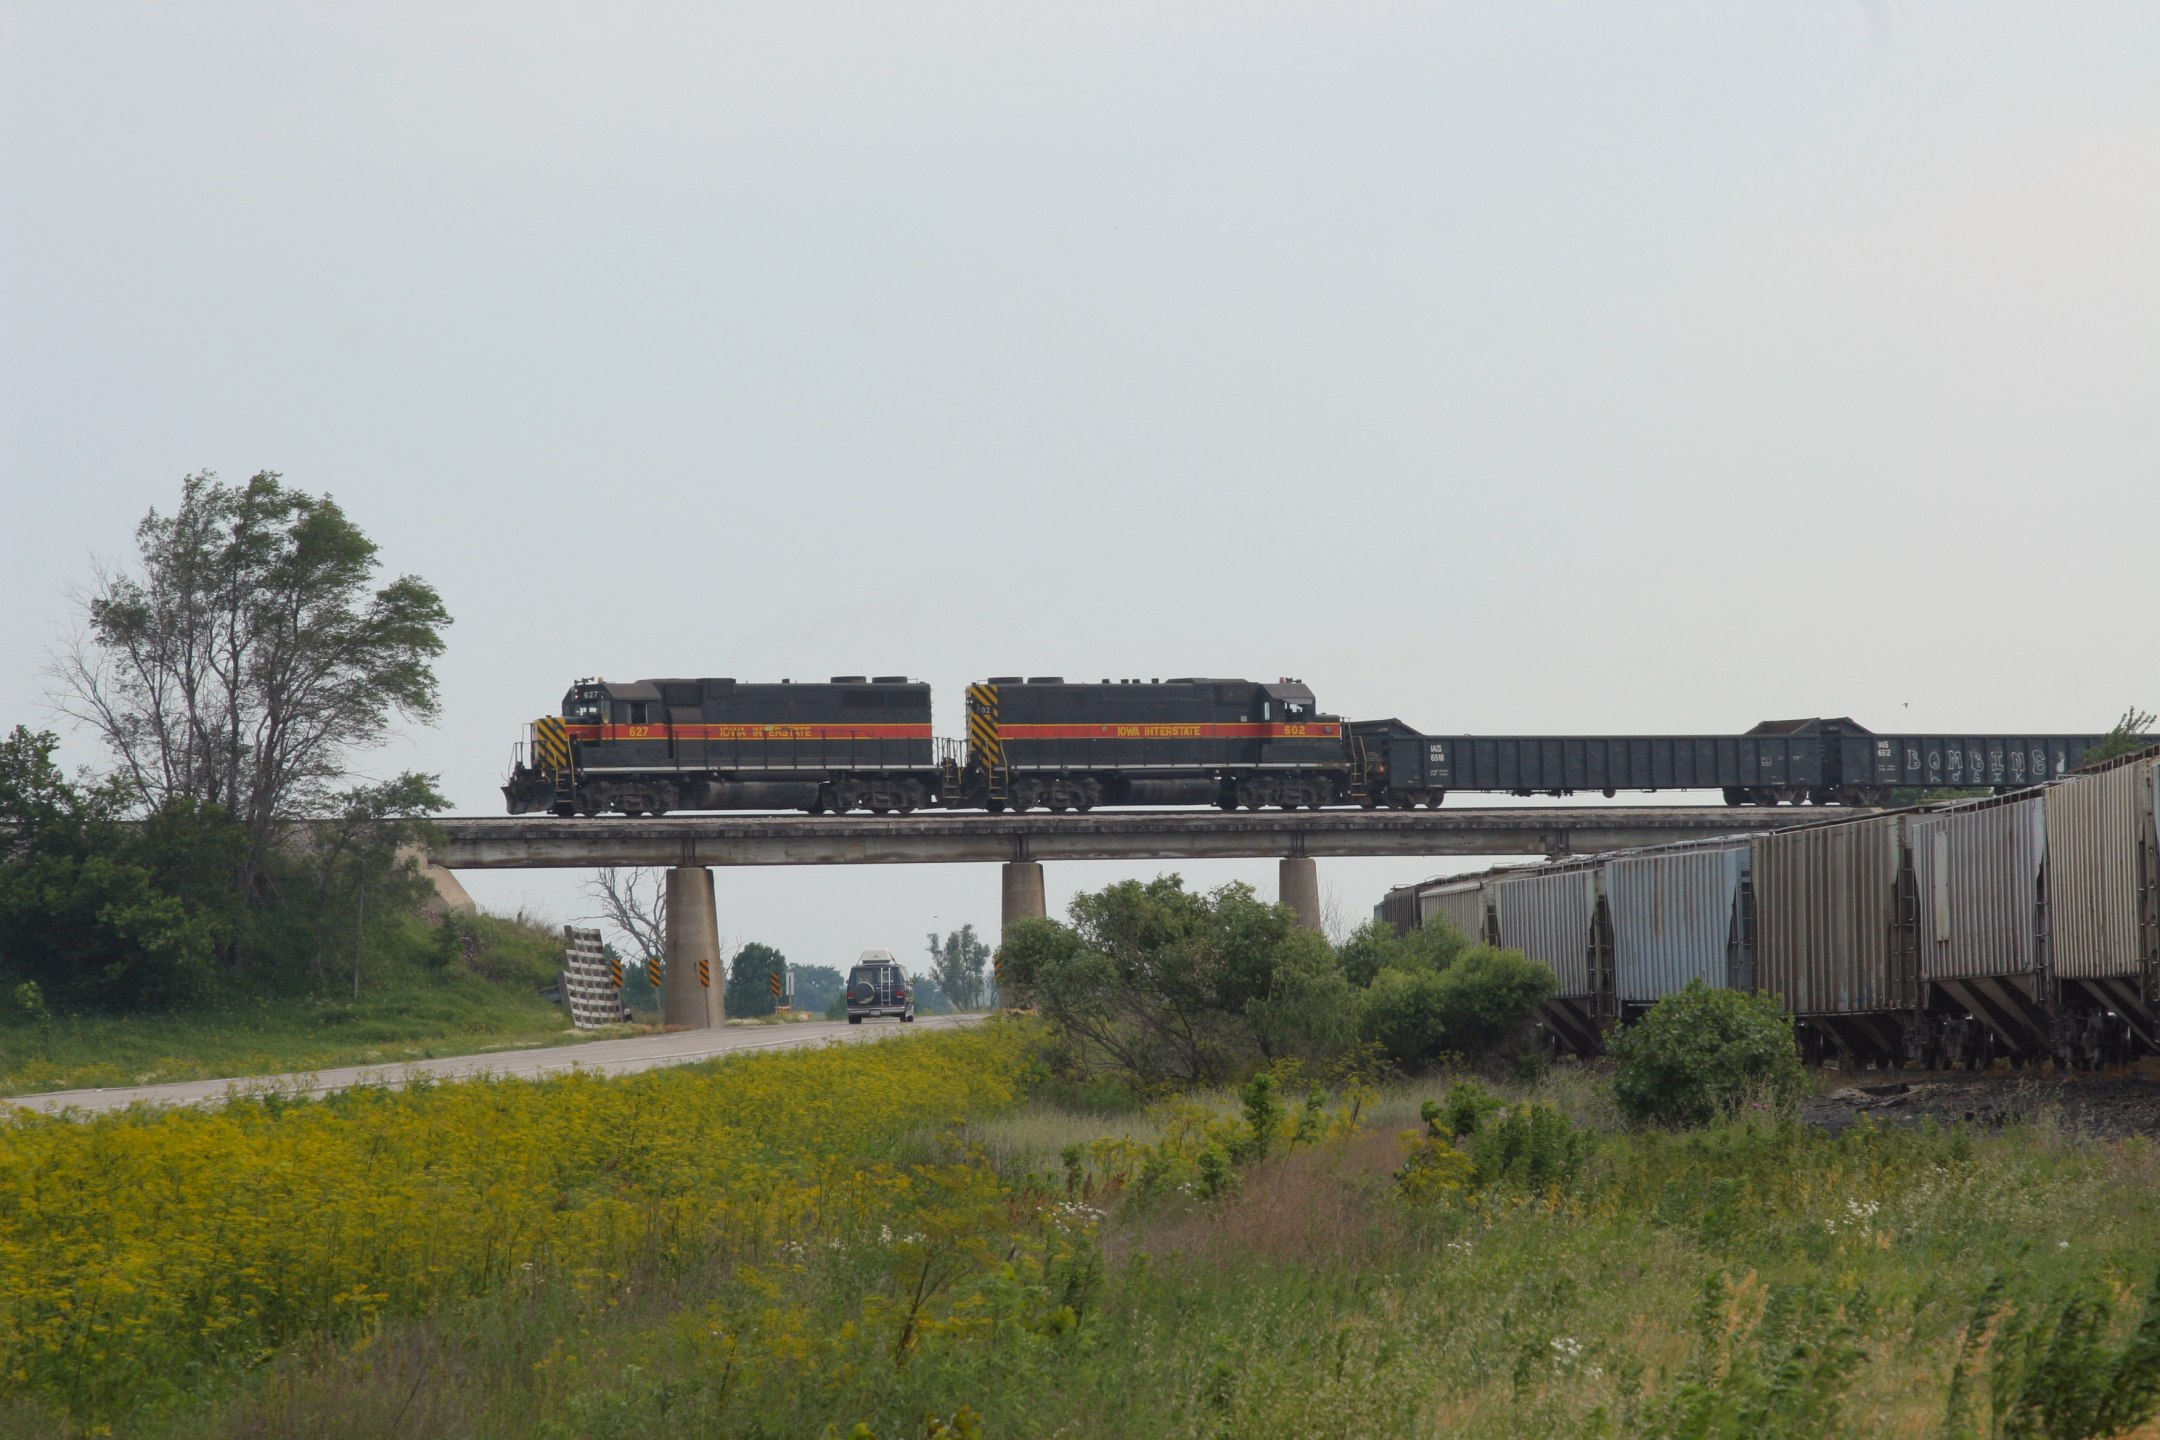 627 and 602 cross the highway at Hancock.  710 and 600 were dropped to drag a cut of hoppers back to Council Bluffs